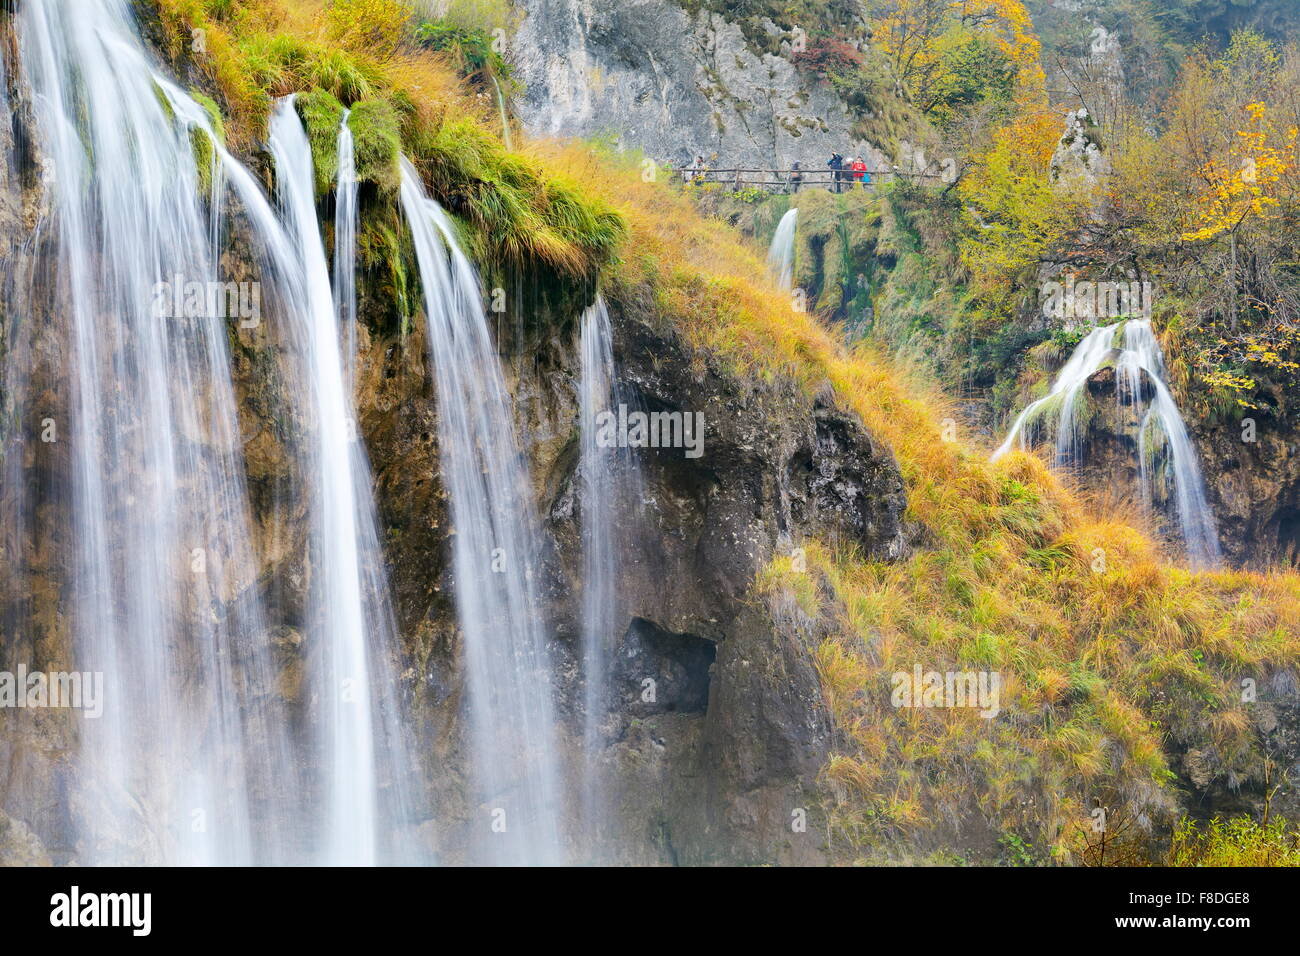 Plitvice Lakes National Park, Croatia, Europe - Stock Image